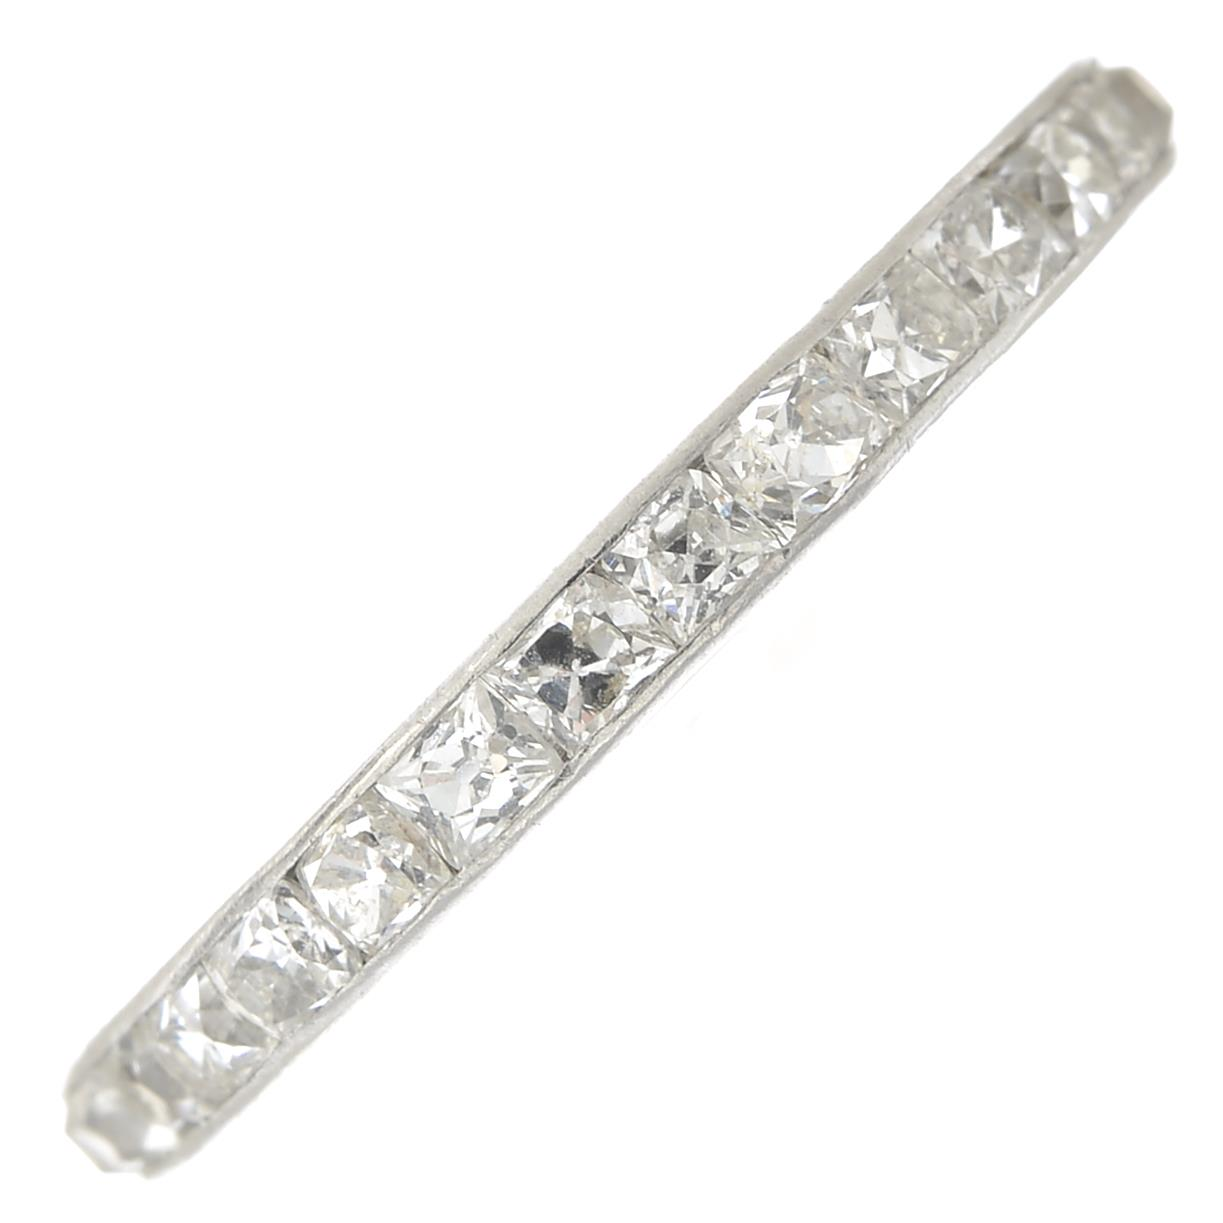 Lot 15 - An early 20th century platinum square-shape old-cut diamond full eternity ring,